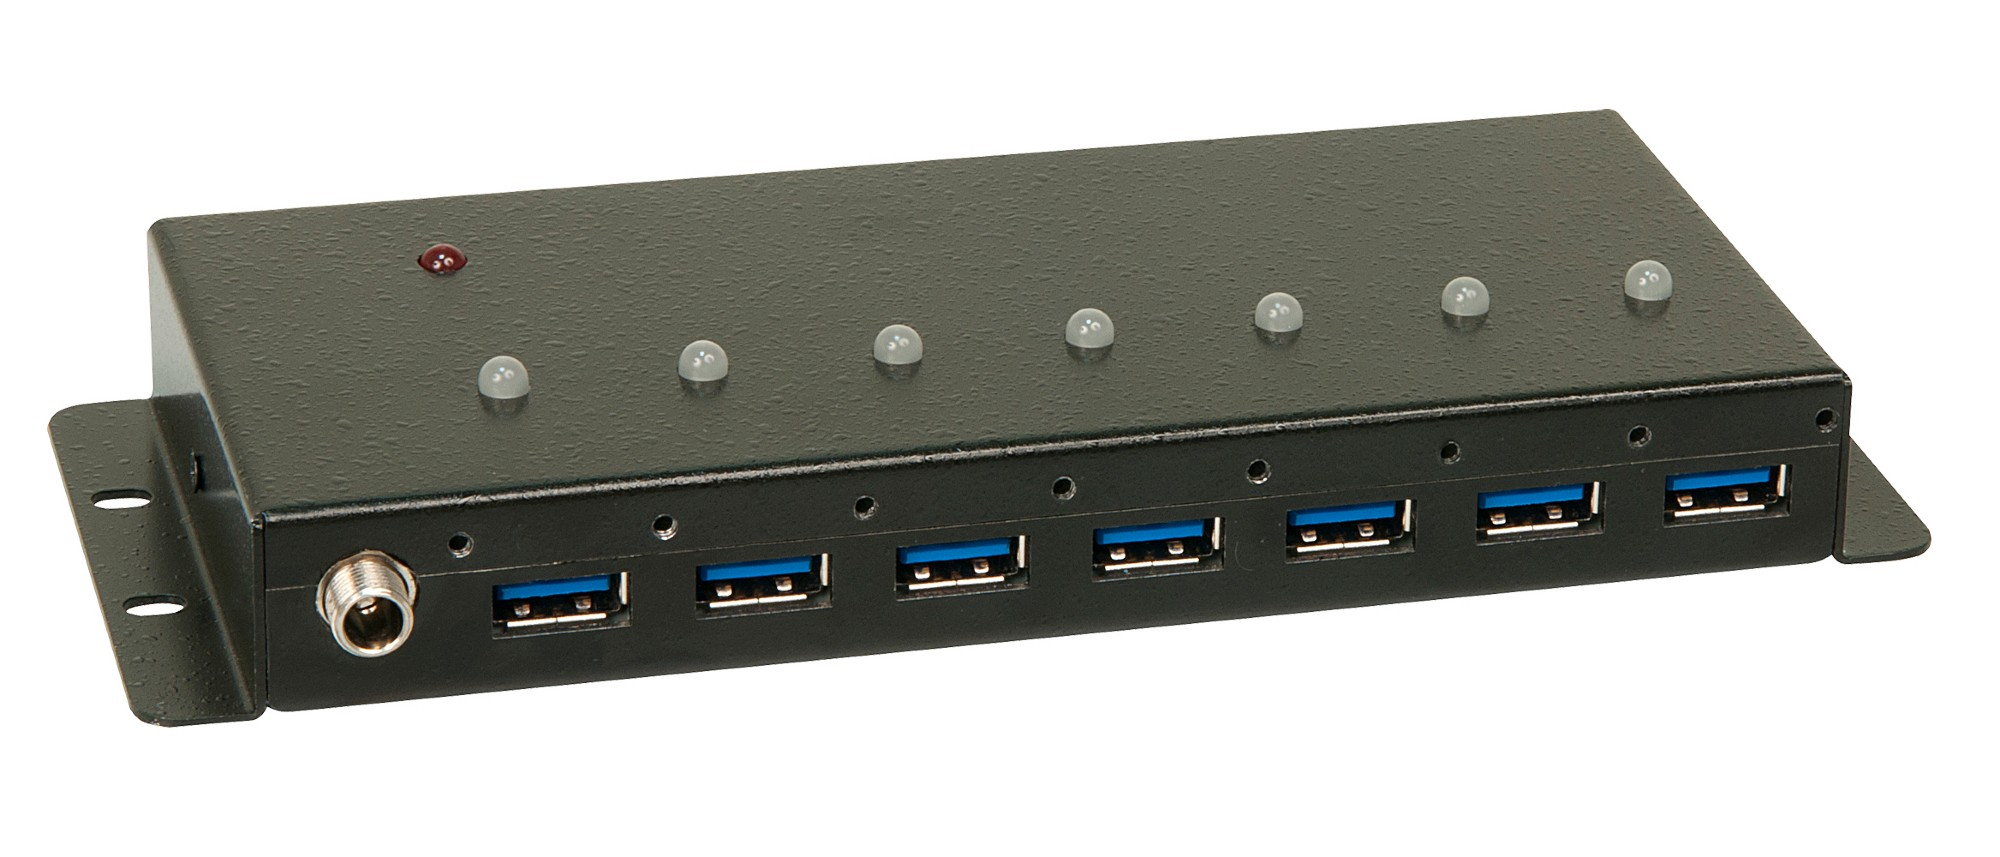 LINDY 43128 USB 3.0 7 PORT 5000MBIT/S BLACK INTERFACE HUB